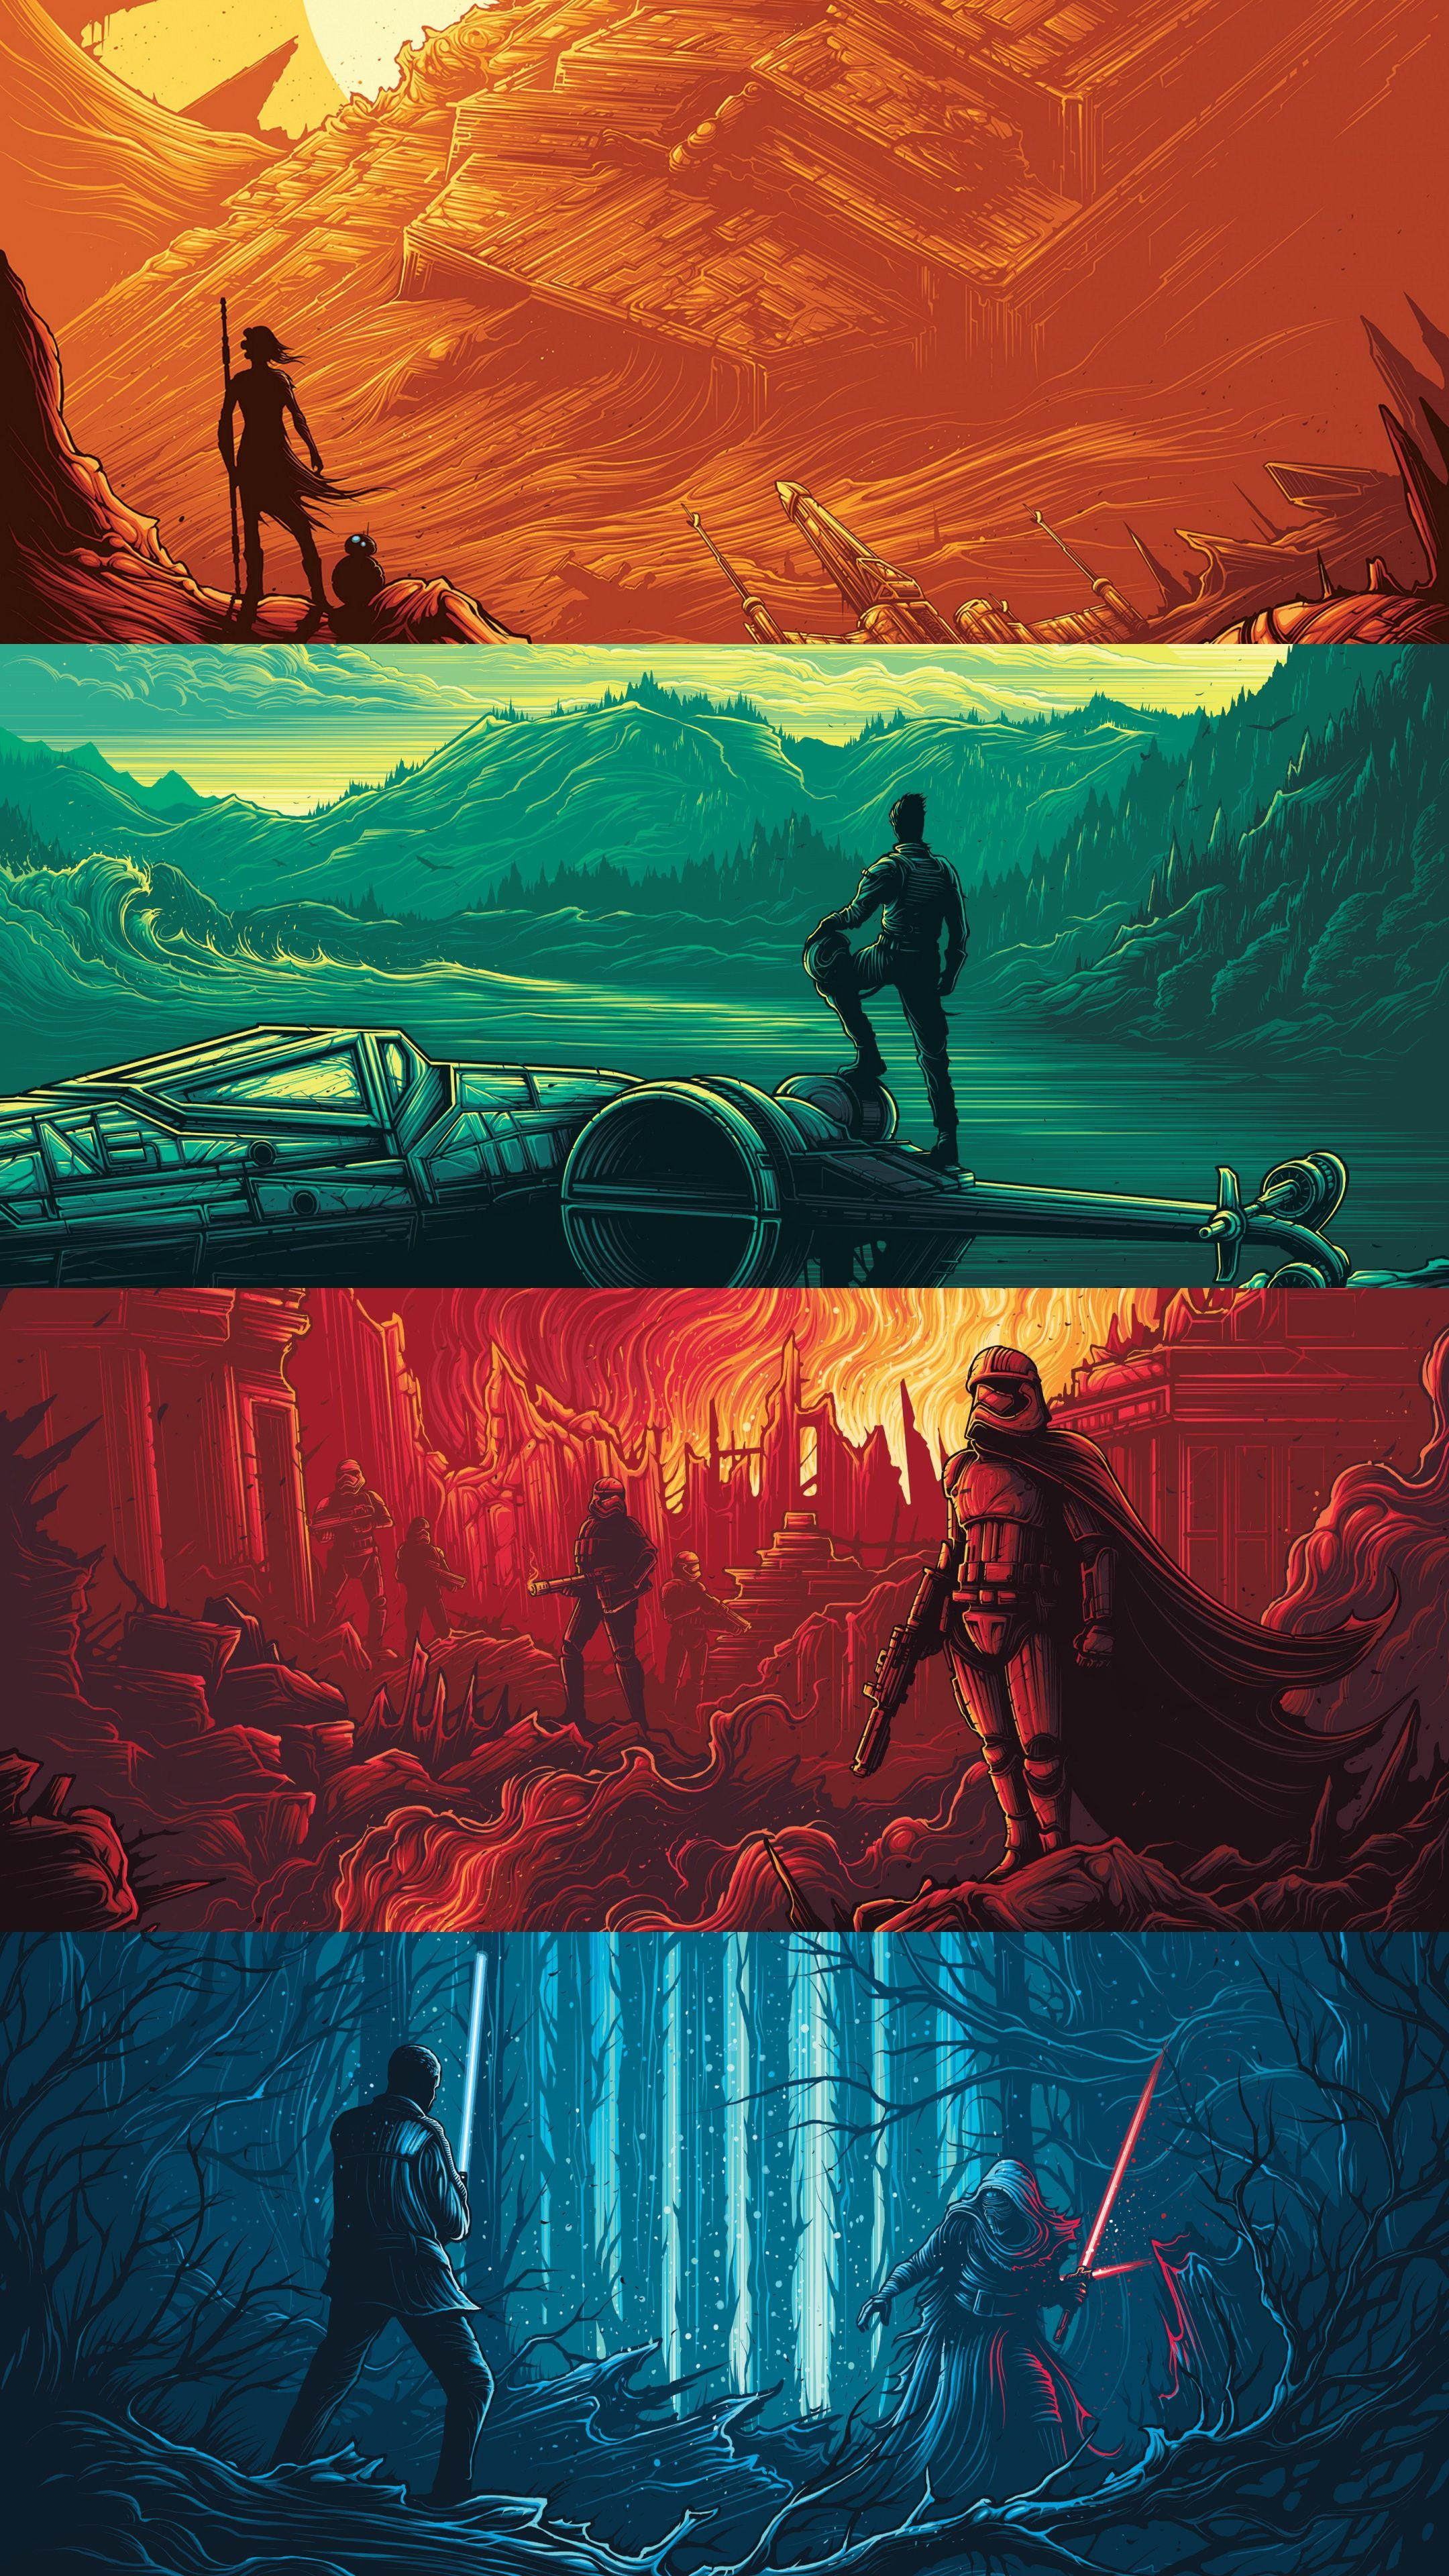 50 Phone Wallpapers All 4k No Watermarks Top Reddit Wallpapers Pinterest Wallpaper Hd In 2020 Star Wars Wallpaper Star Wars Pictures Star Wars Poster